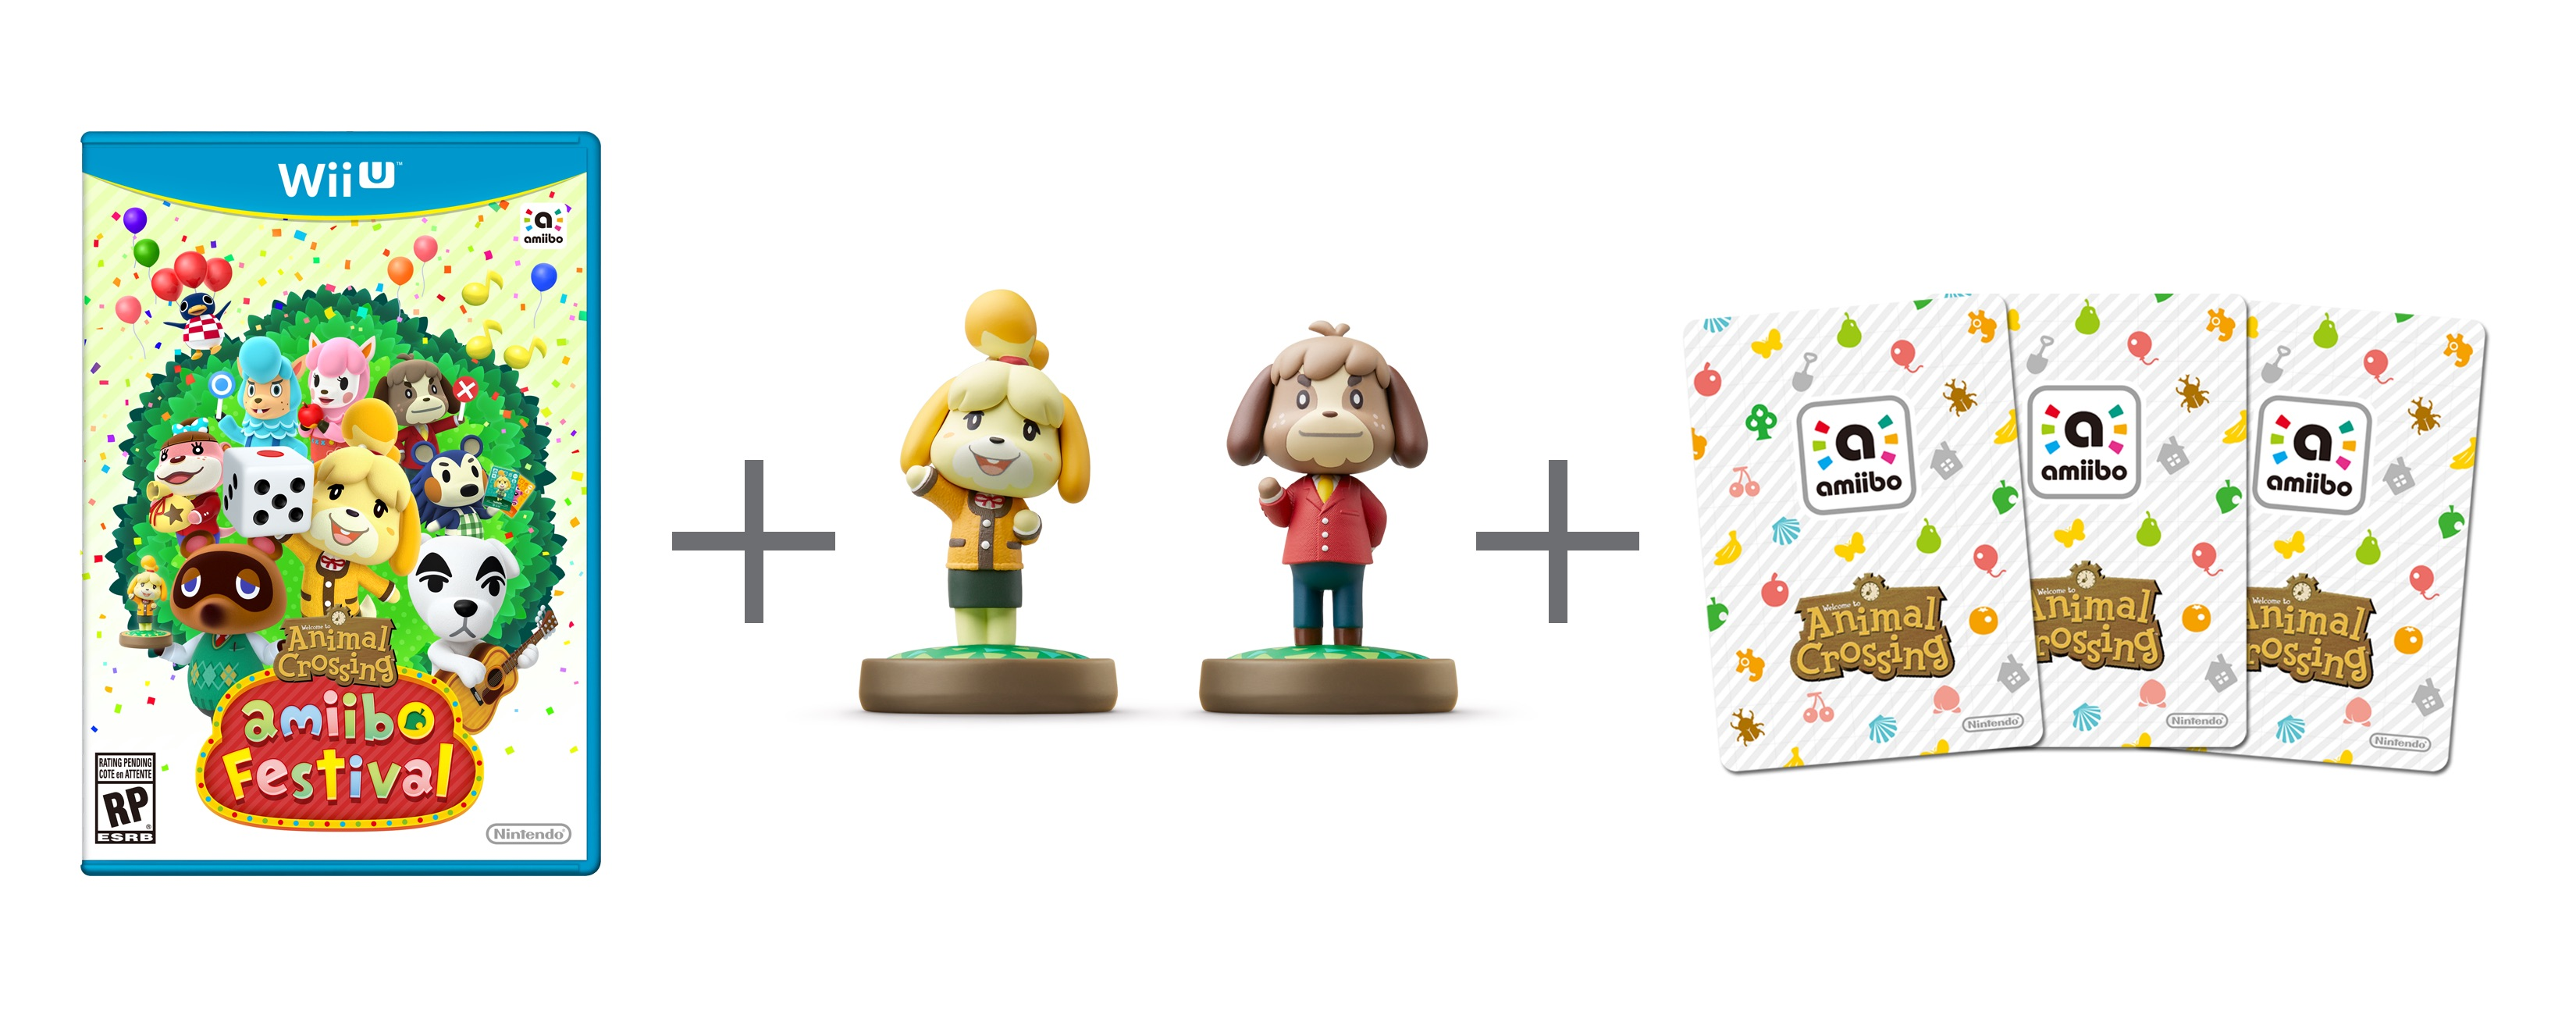 Amiibo Crossing Animal Crossing Amiibo Festival Isabelle And Digby Amiibo